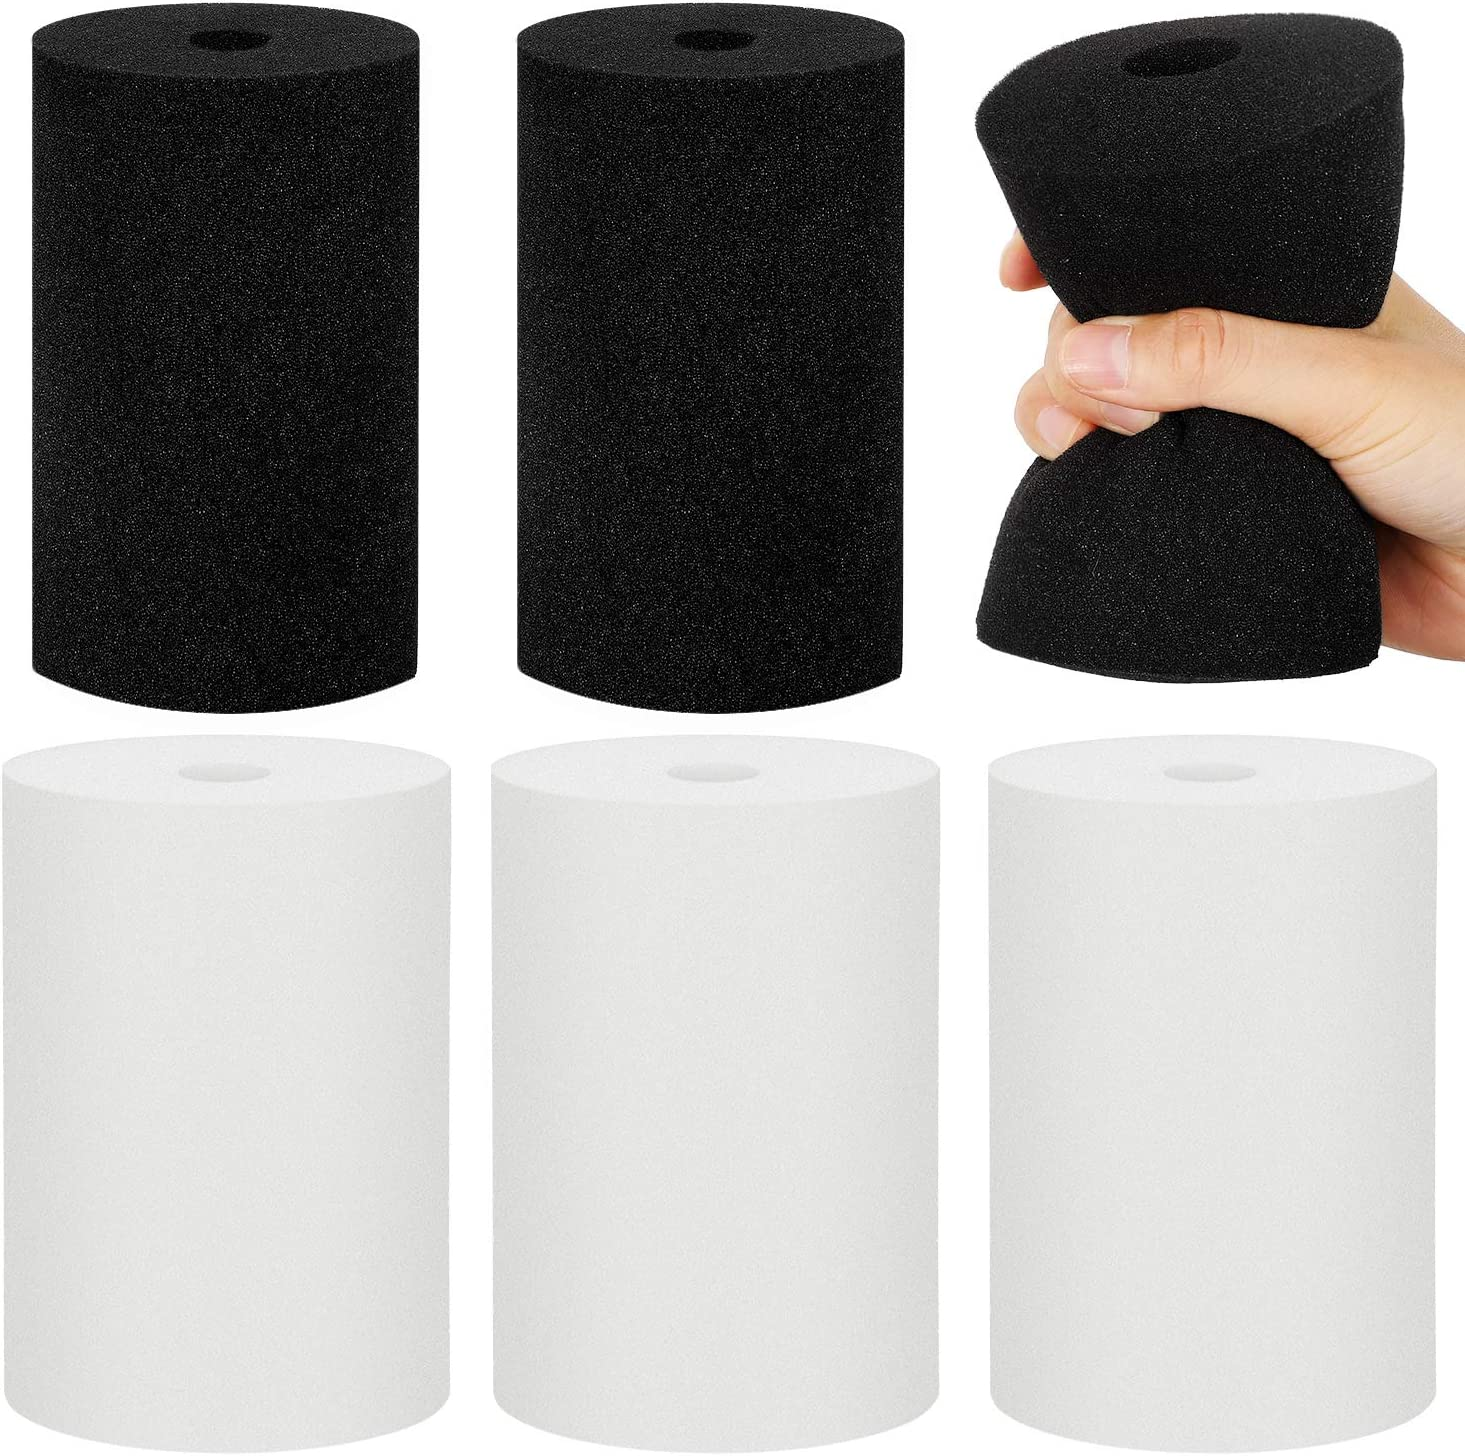 Flexible Foam for 10 oz to 40 oz Skinny and Common Tumblers Crafting Cup Turner Foam Inserts White Black Work with 3//4 Inch PVC Pipe Weewooday 6 Pieces Foam for Cup Turner